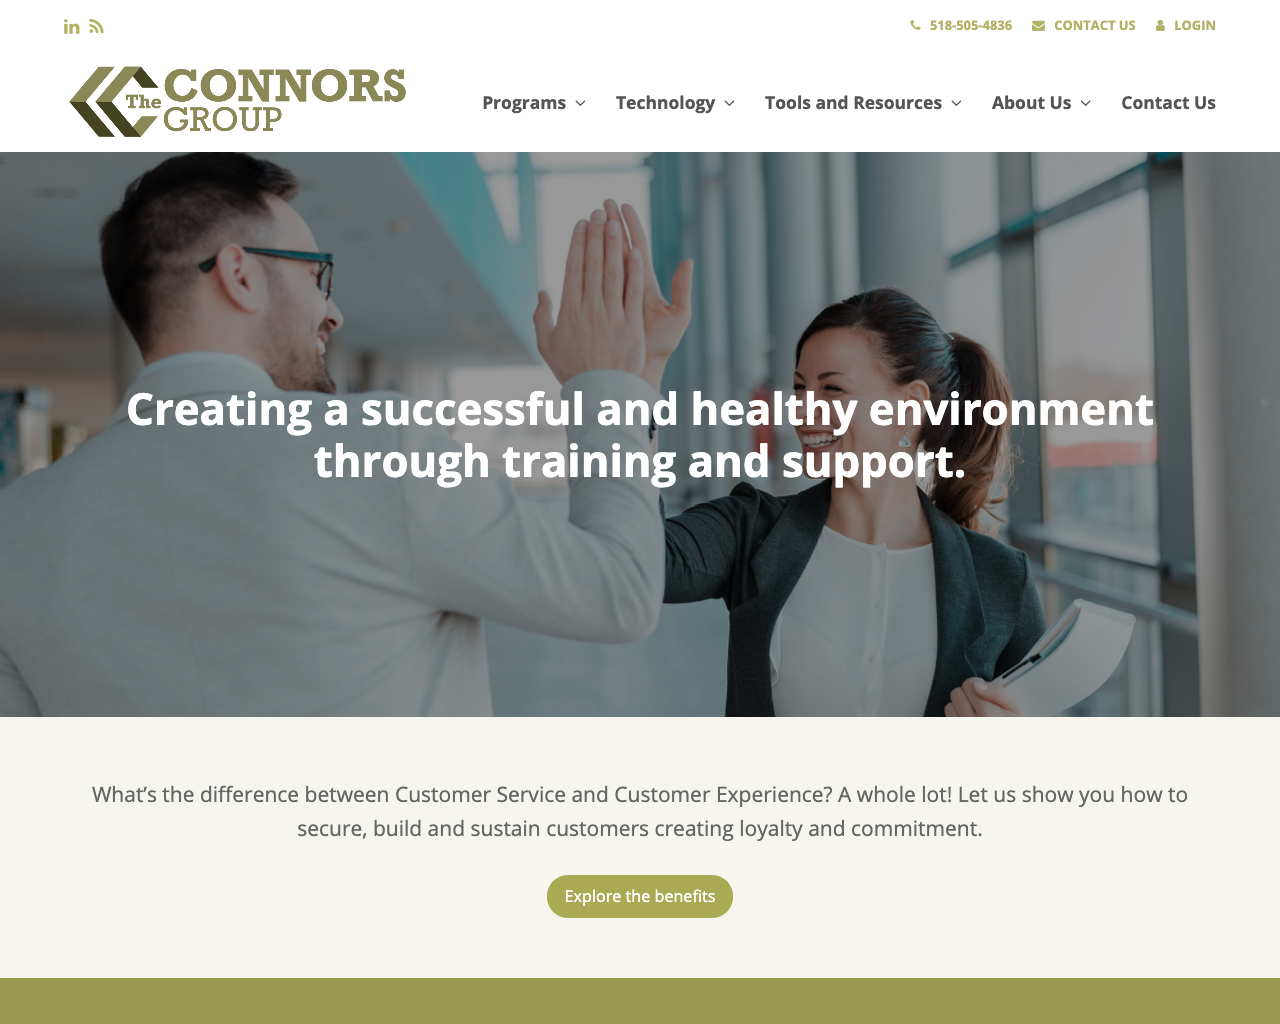 The Connors Group - Web design, content creation